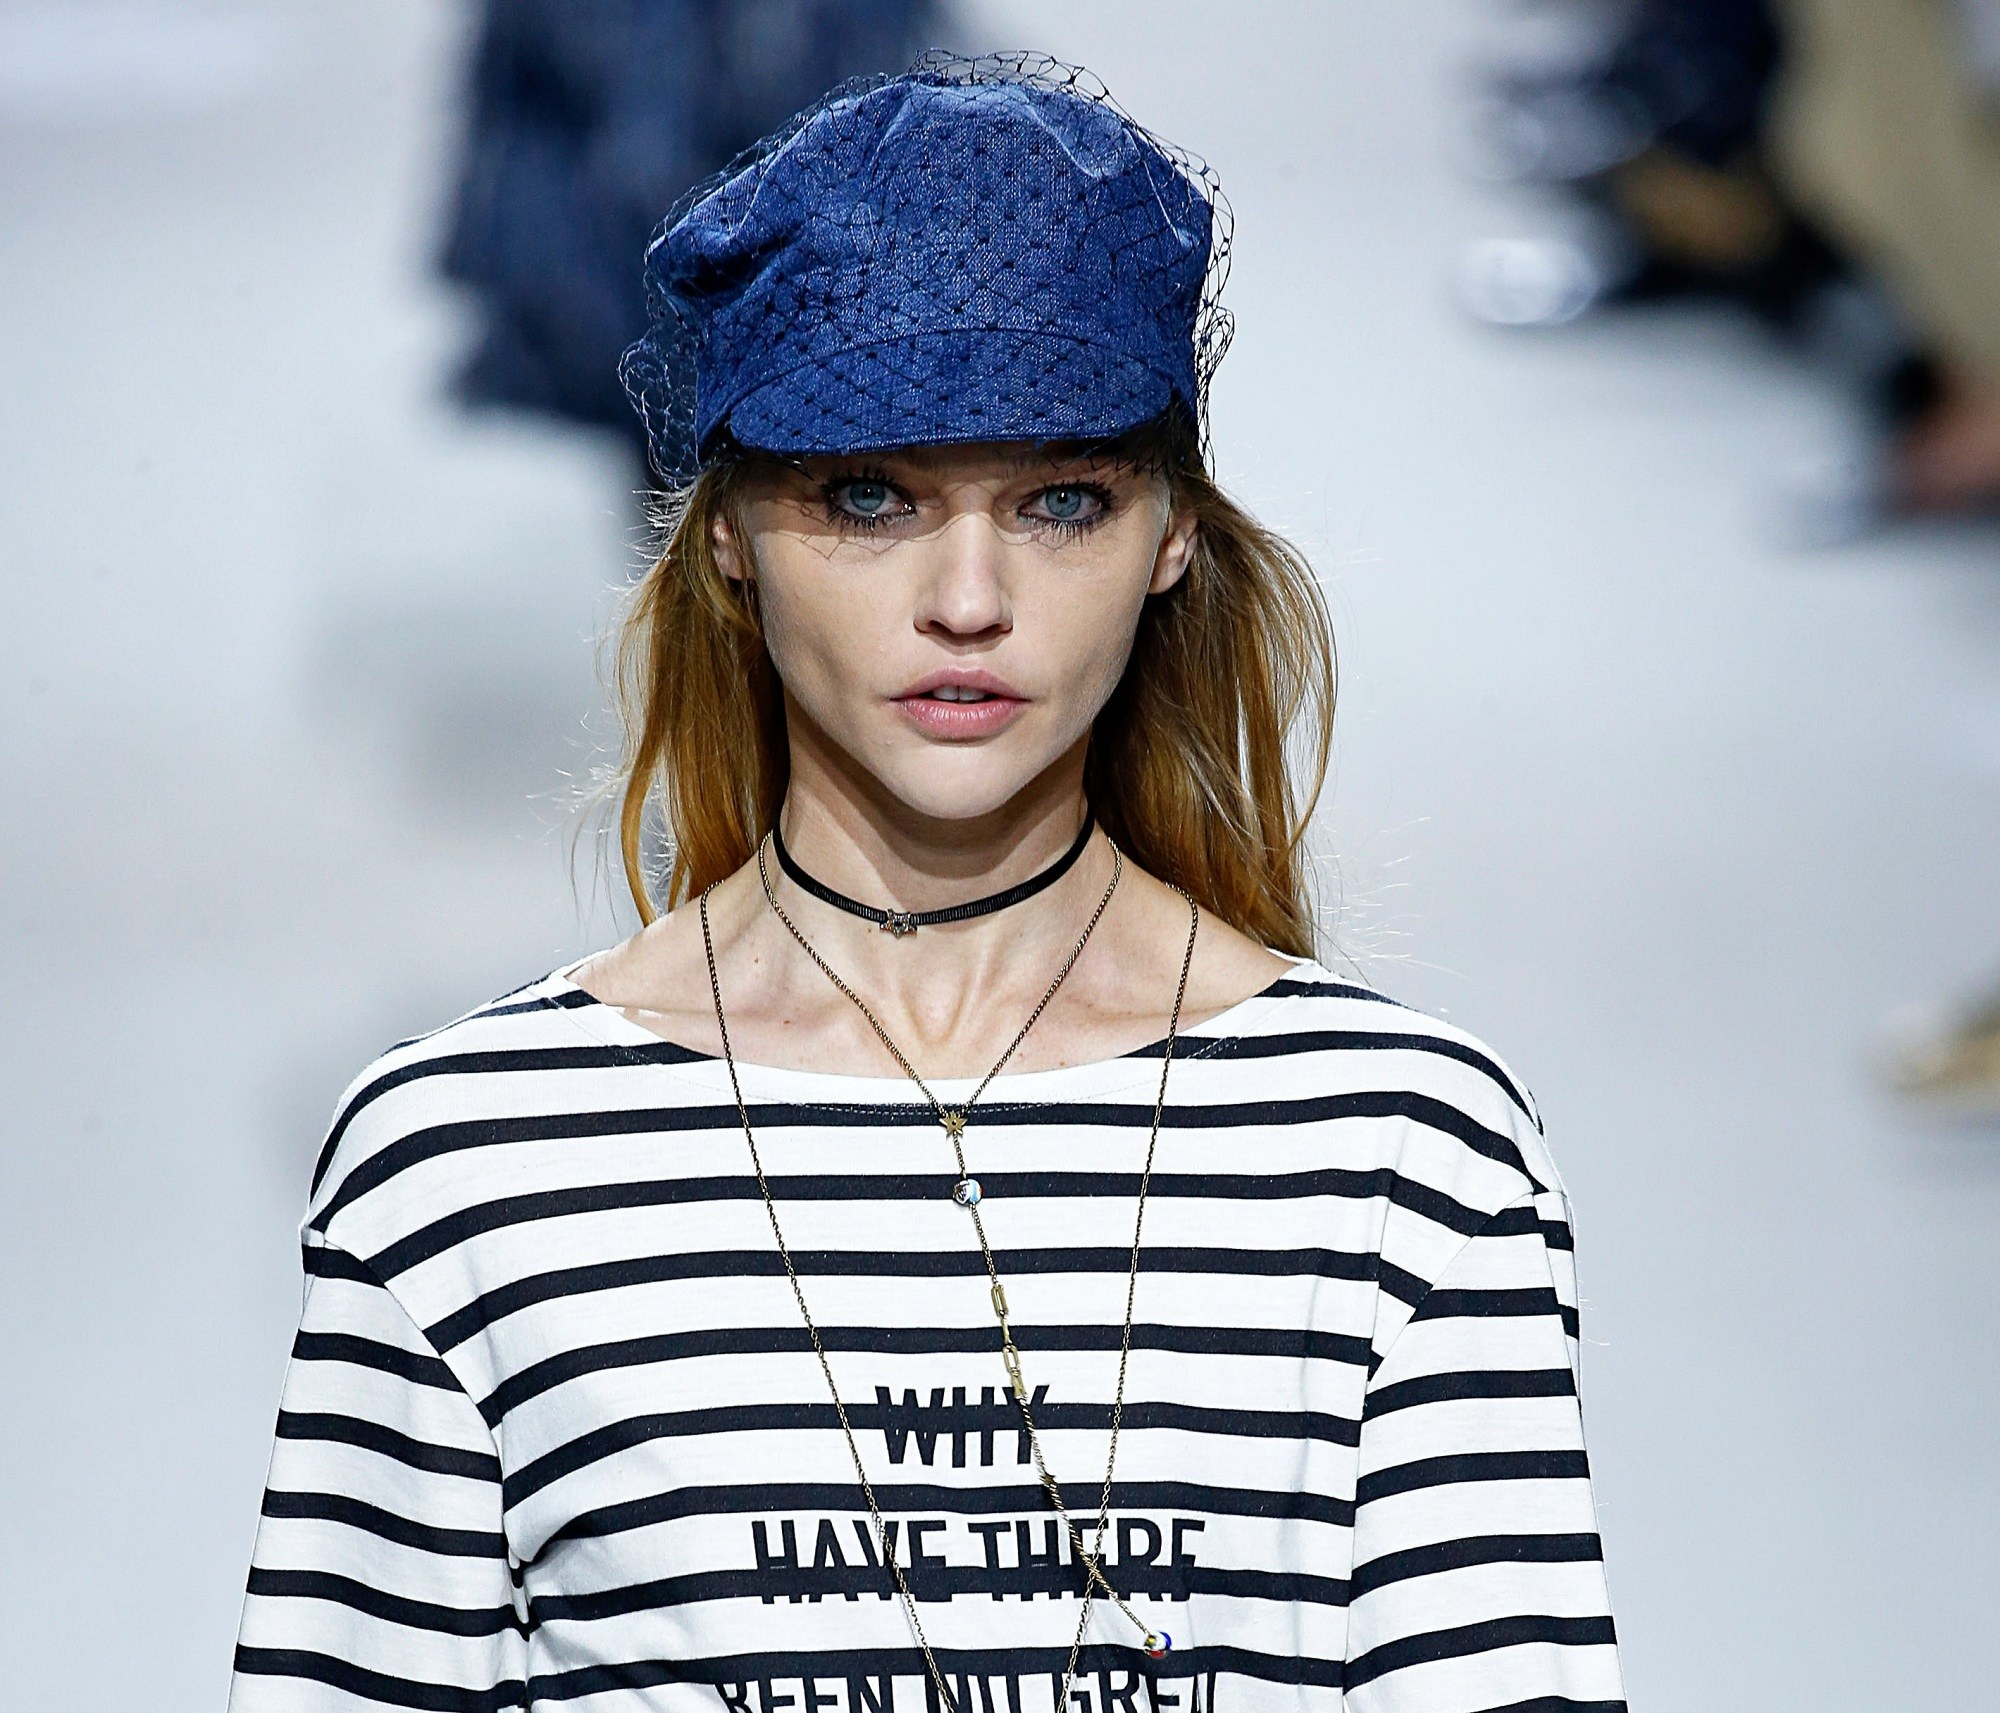 Wear a hat: One way on how to hide bangs